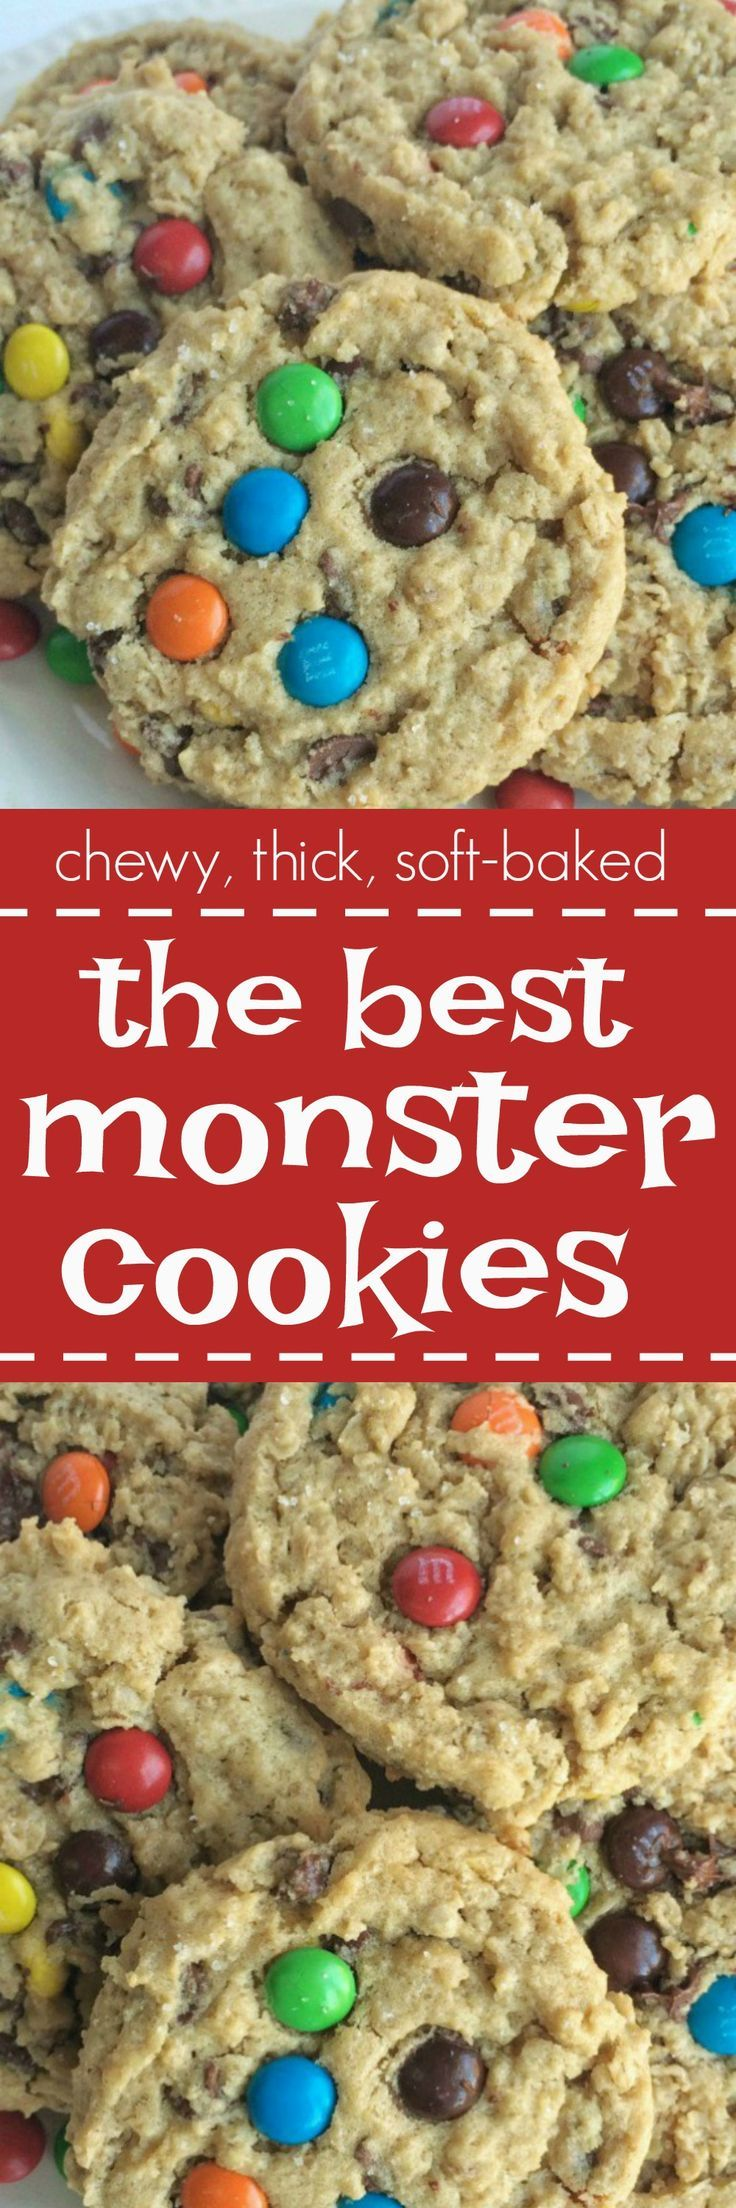 The best monster cookies are loaded with peanut butter, oats, chocolate chips, and m&m's! They are thick, chewy, and a soft-baked cookie, with a surprise ingredient, that are addictiveand delicious.